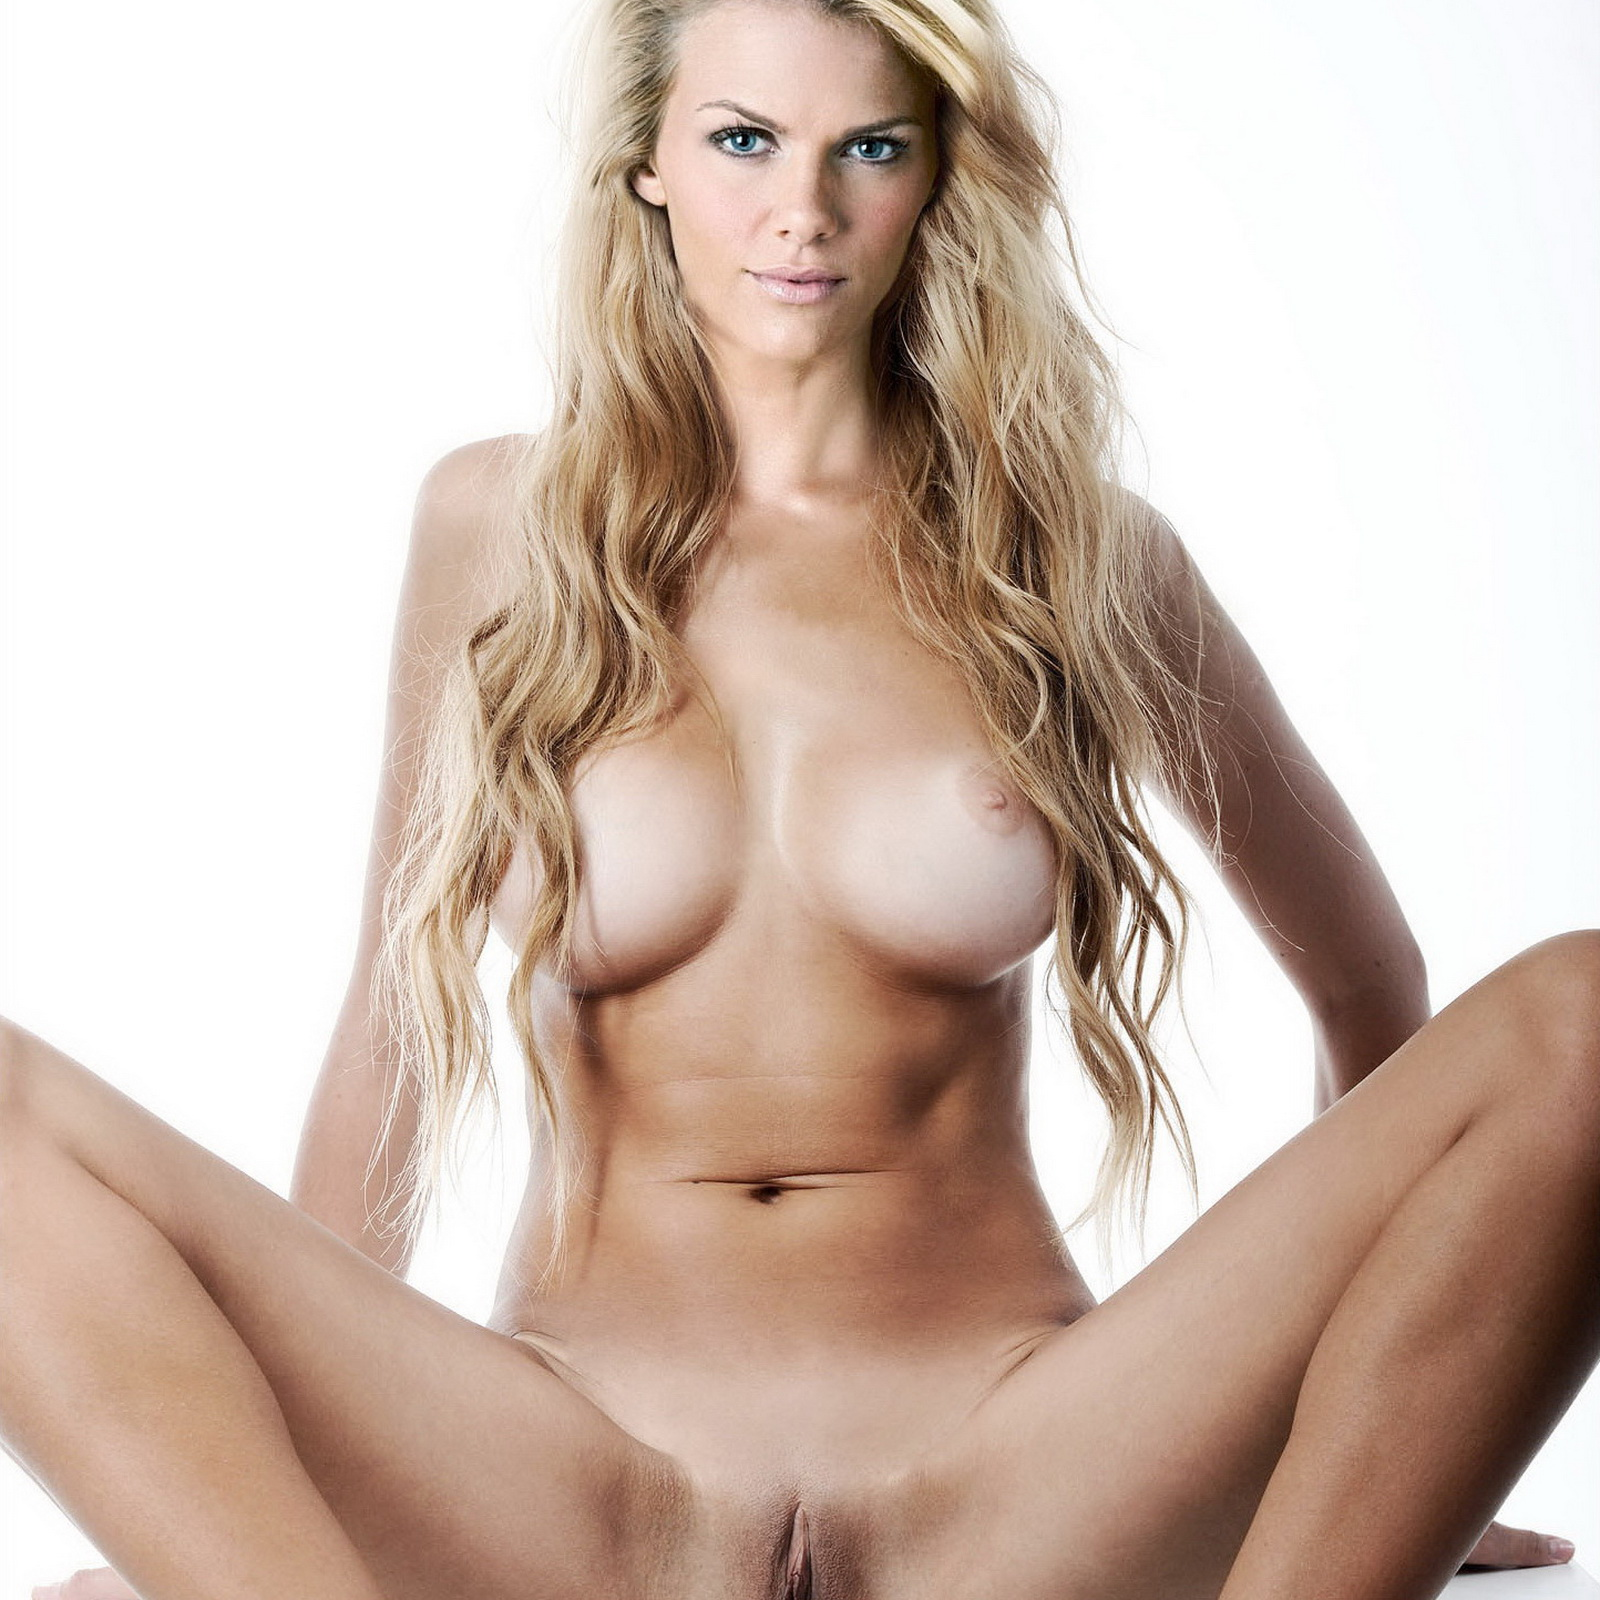 Nude pics of brooklyn decker